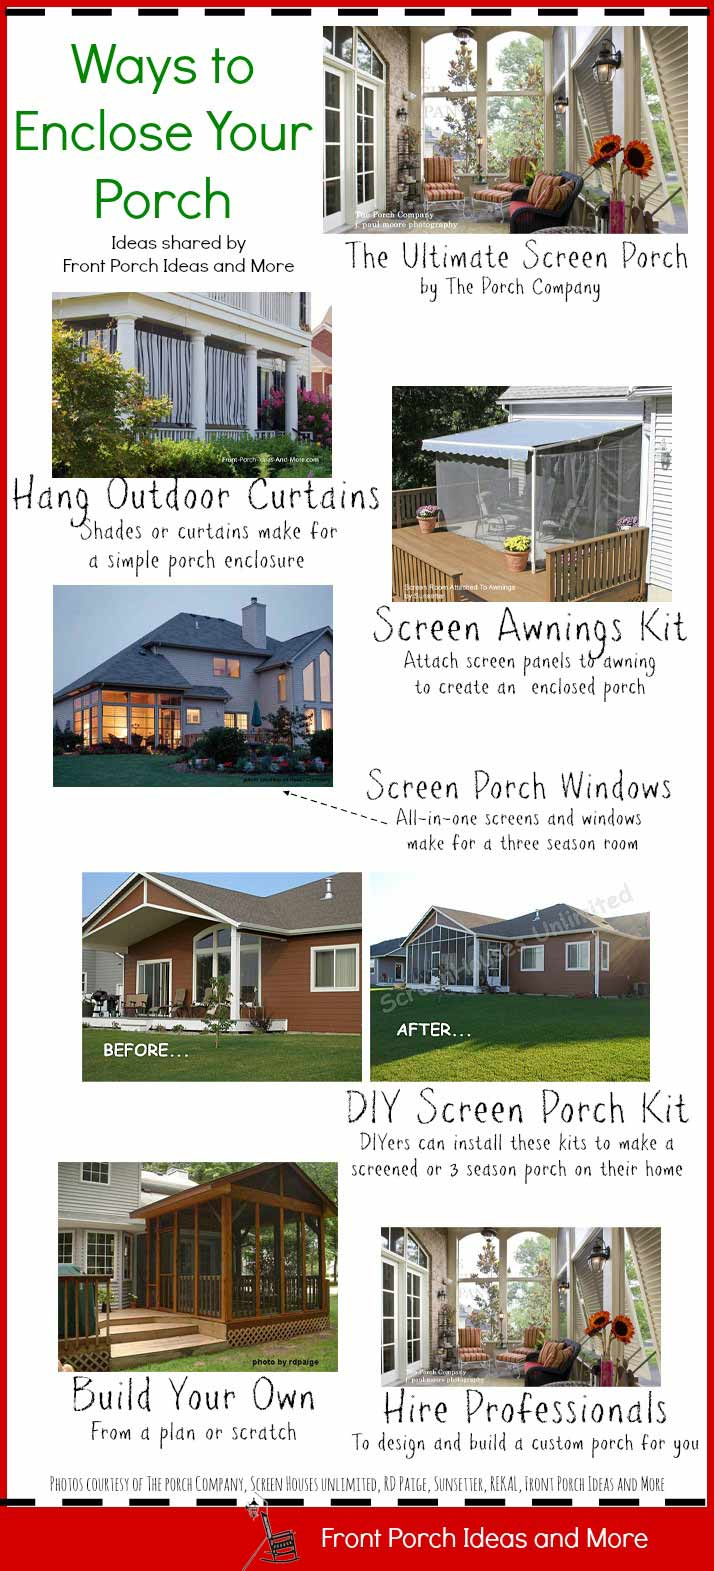 Genial If You Want An Enclosed Porch, Here Are Some Ways To Achieve That   From